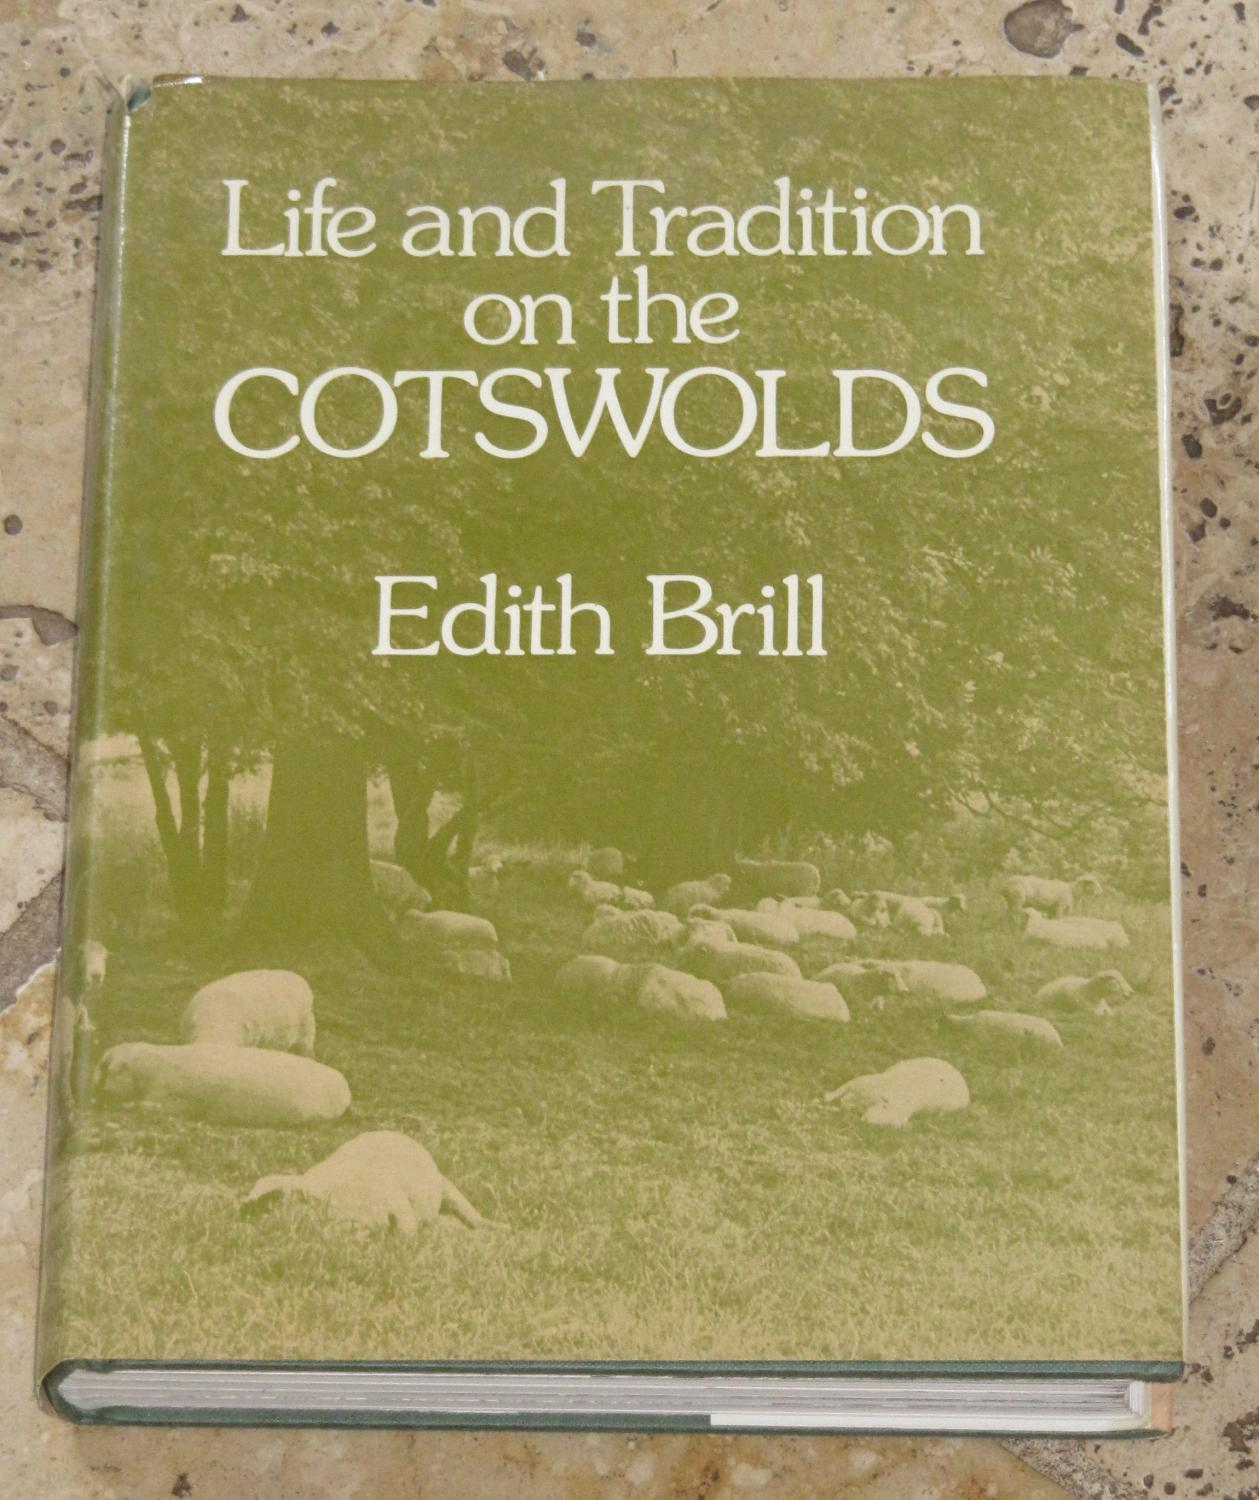 Cotswold Gardens and Wild Life Trusts